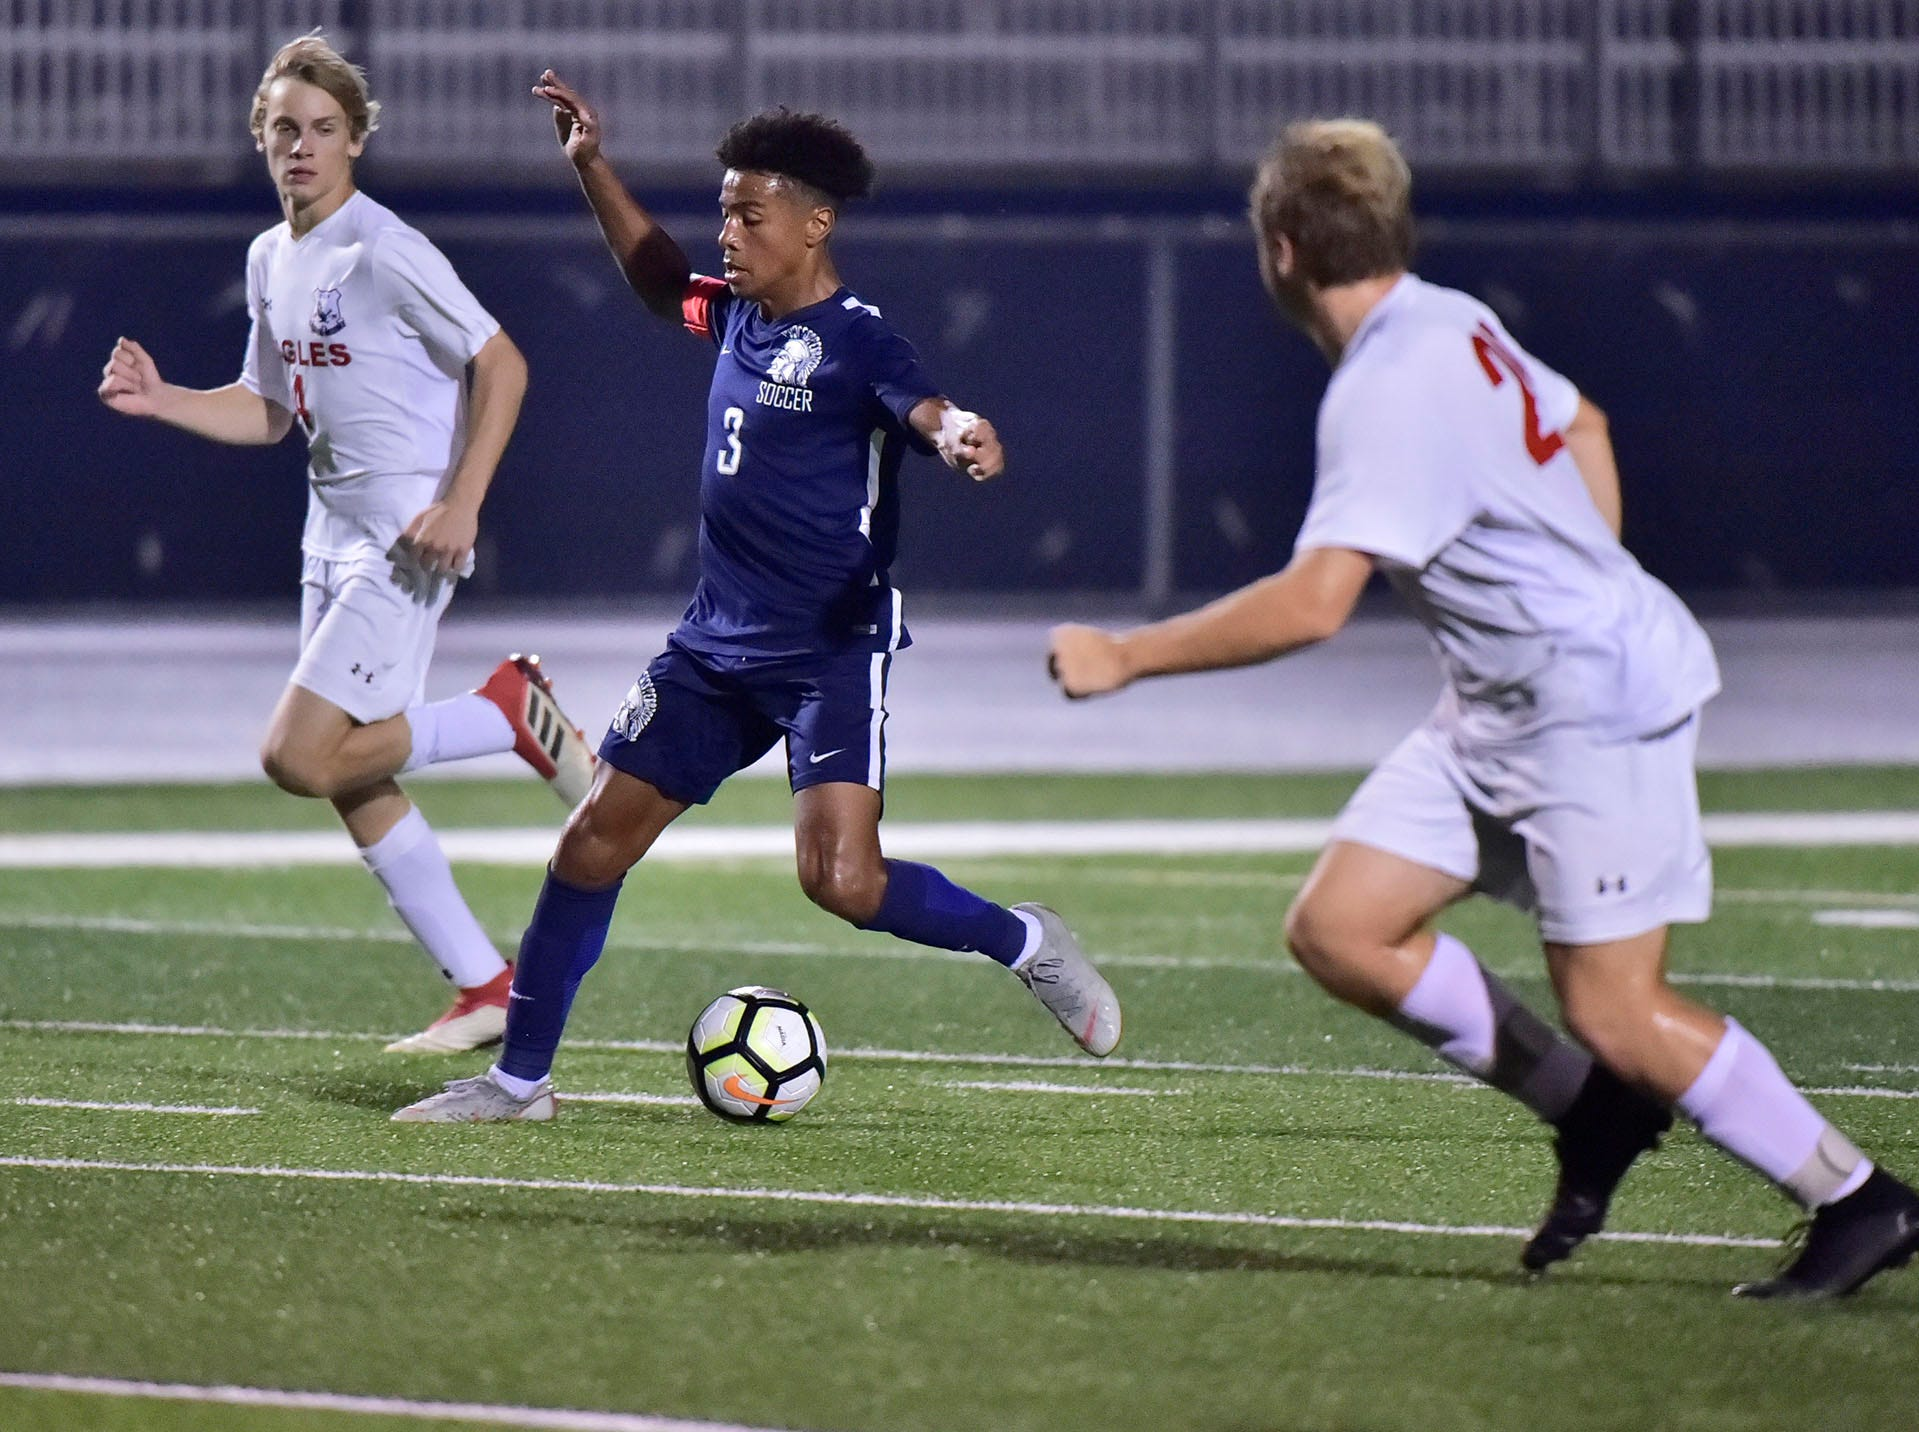 Chambersburg's Ebe Hewitt (3) works the ball between CV defenders. Chambersburg hosted Cumberland Valley in PIAA soccer on Thursday, Oct. 4, 2018, but dropped a 2-1 match in double overtime.